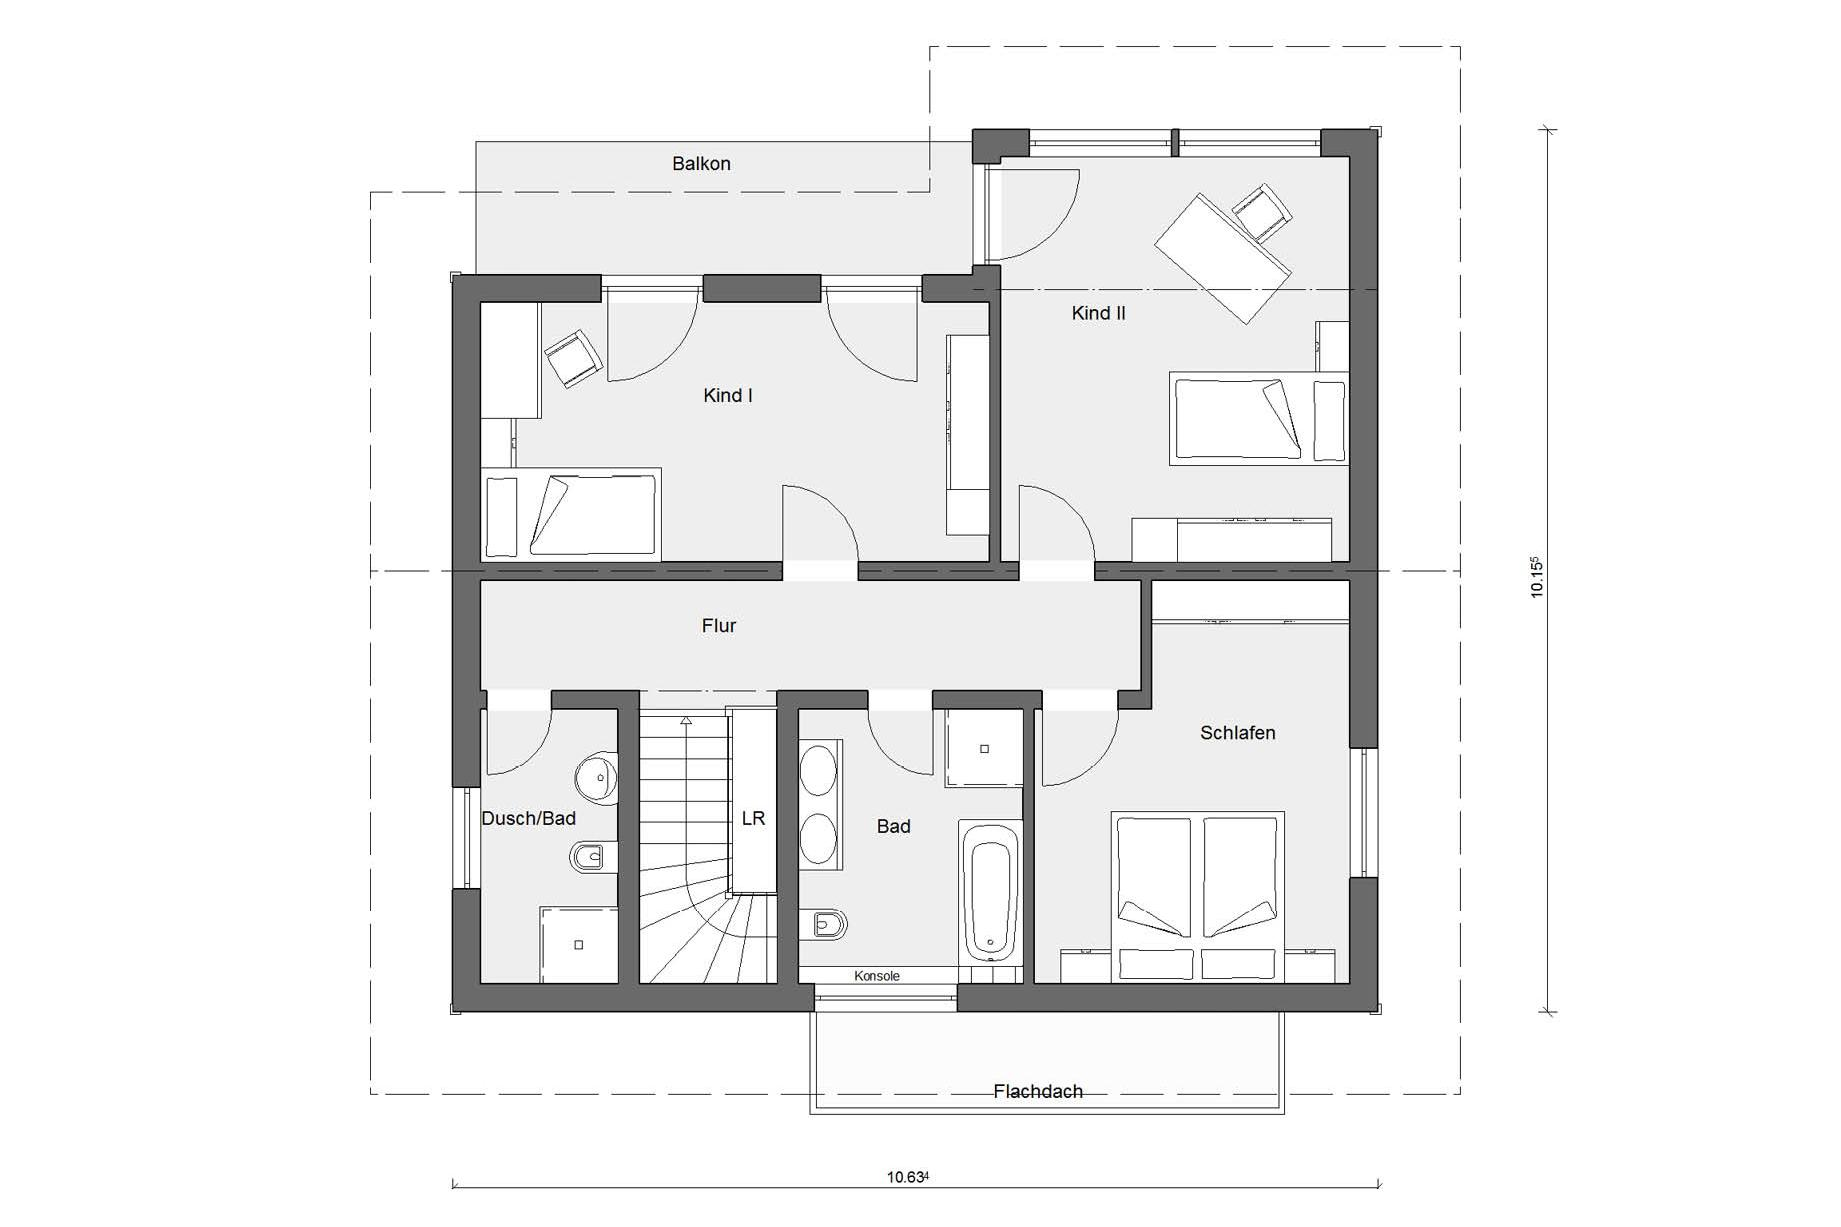 Attic floor plan Prefabricated house with wooden facade E 20-159.1